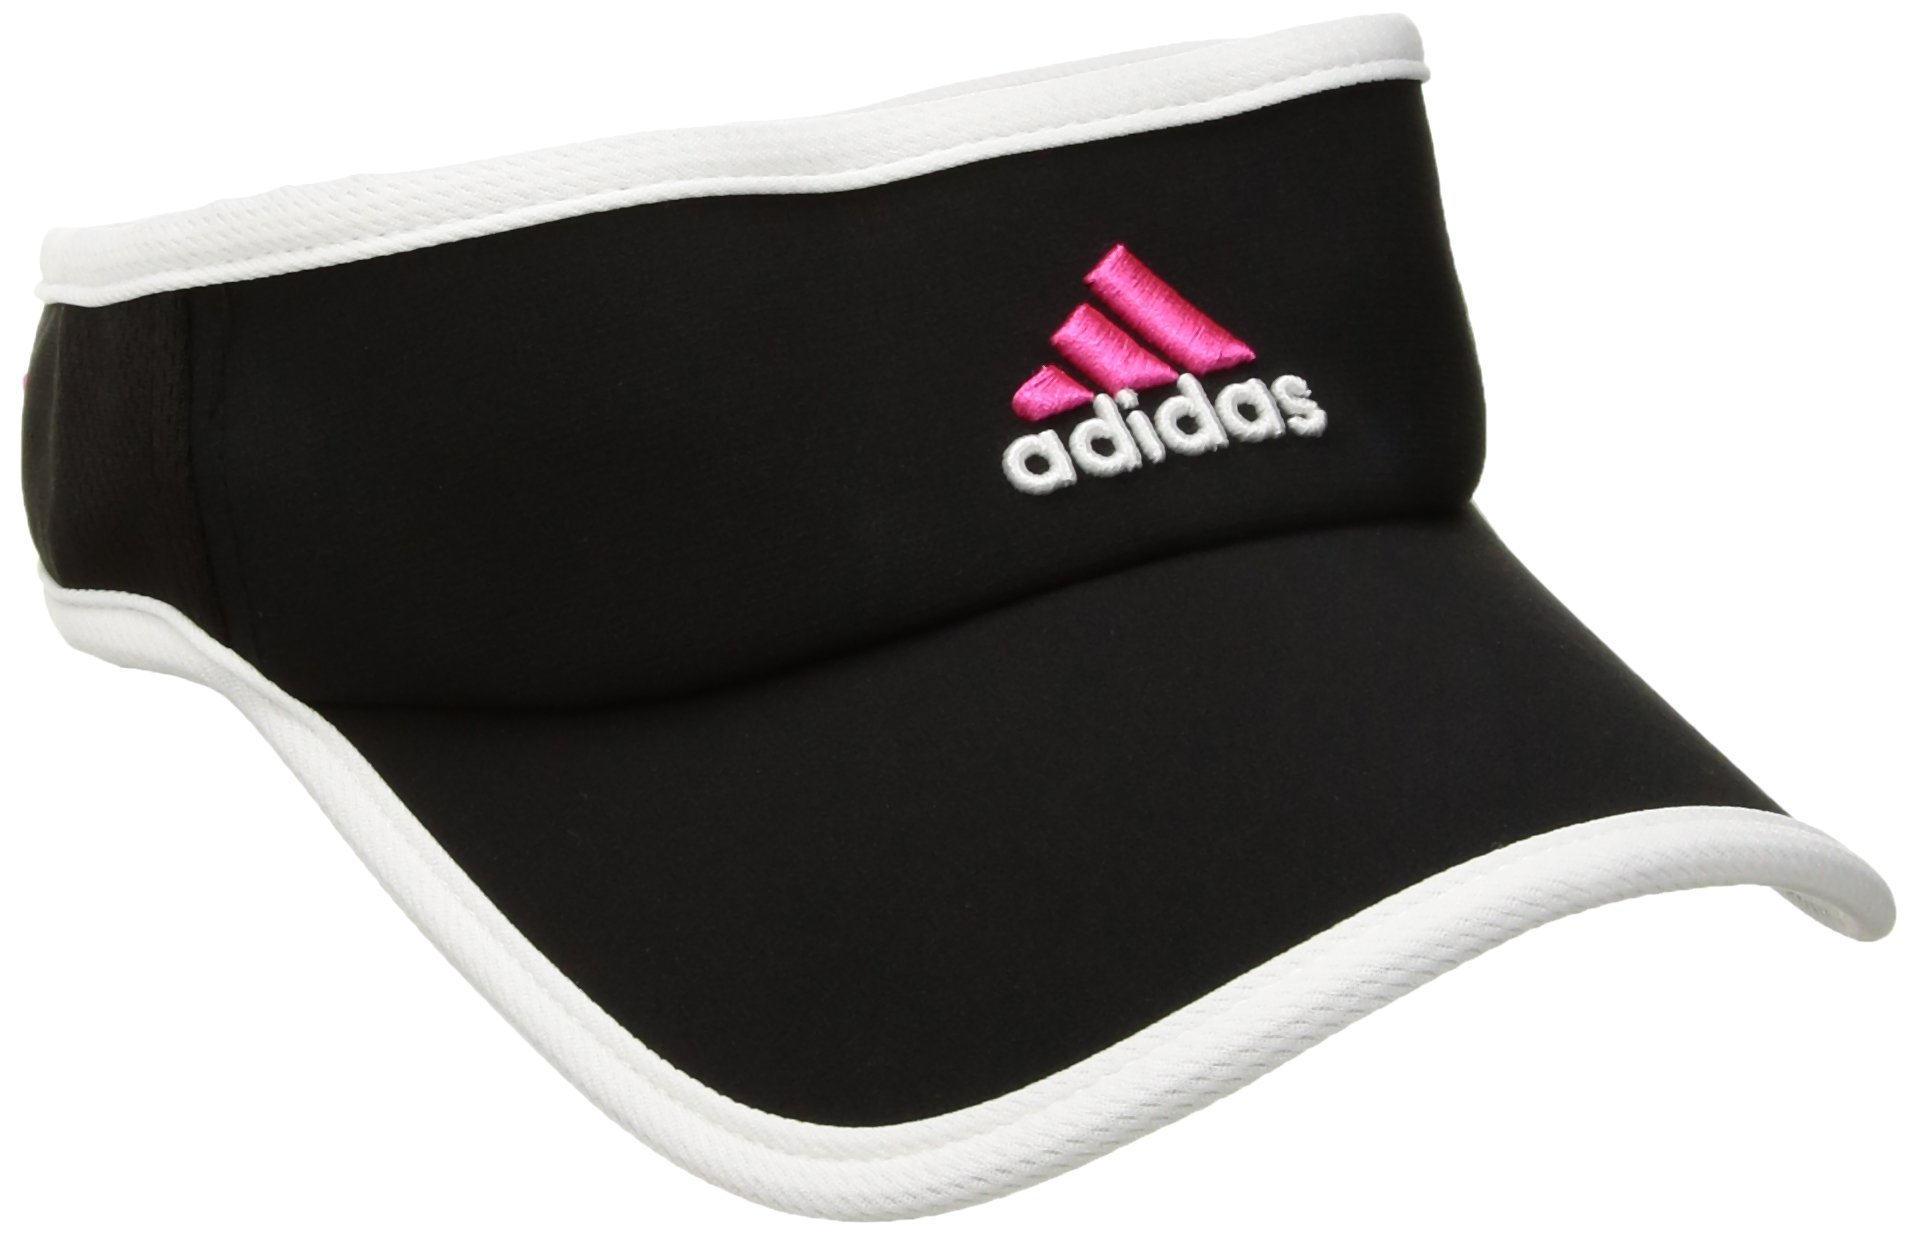 adidas Women's Adizero Visor, Black/White/Blaze Pink, One Size Fits All